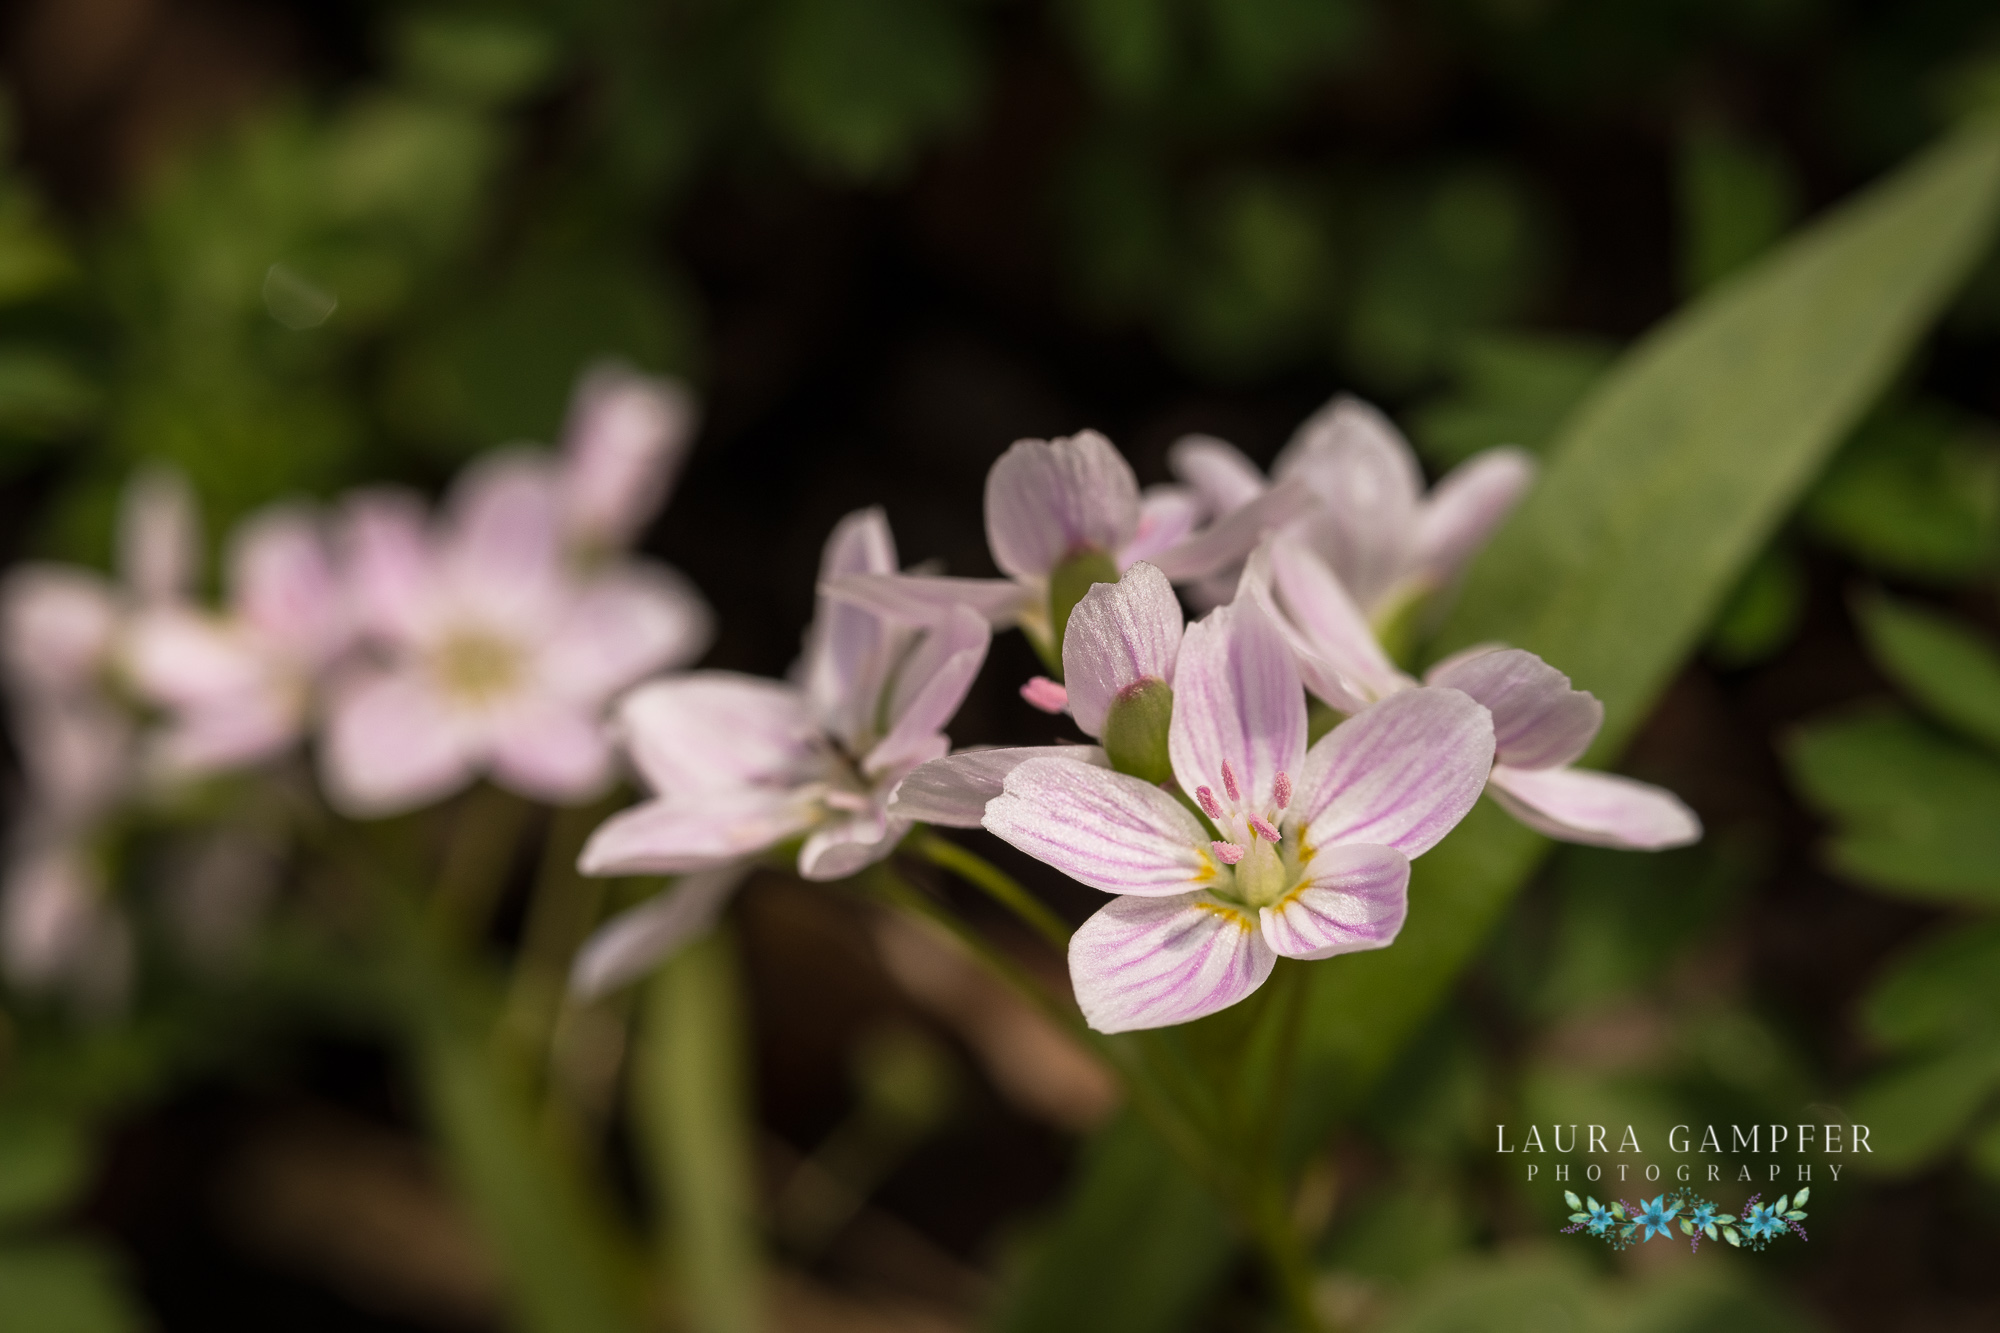 illinois forest preserve wildflowers spring beauty